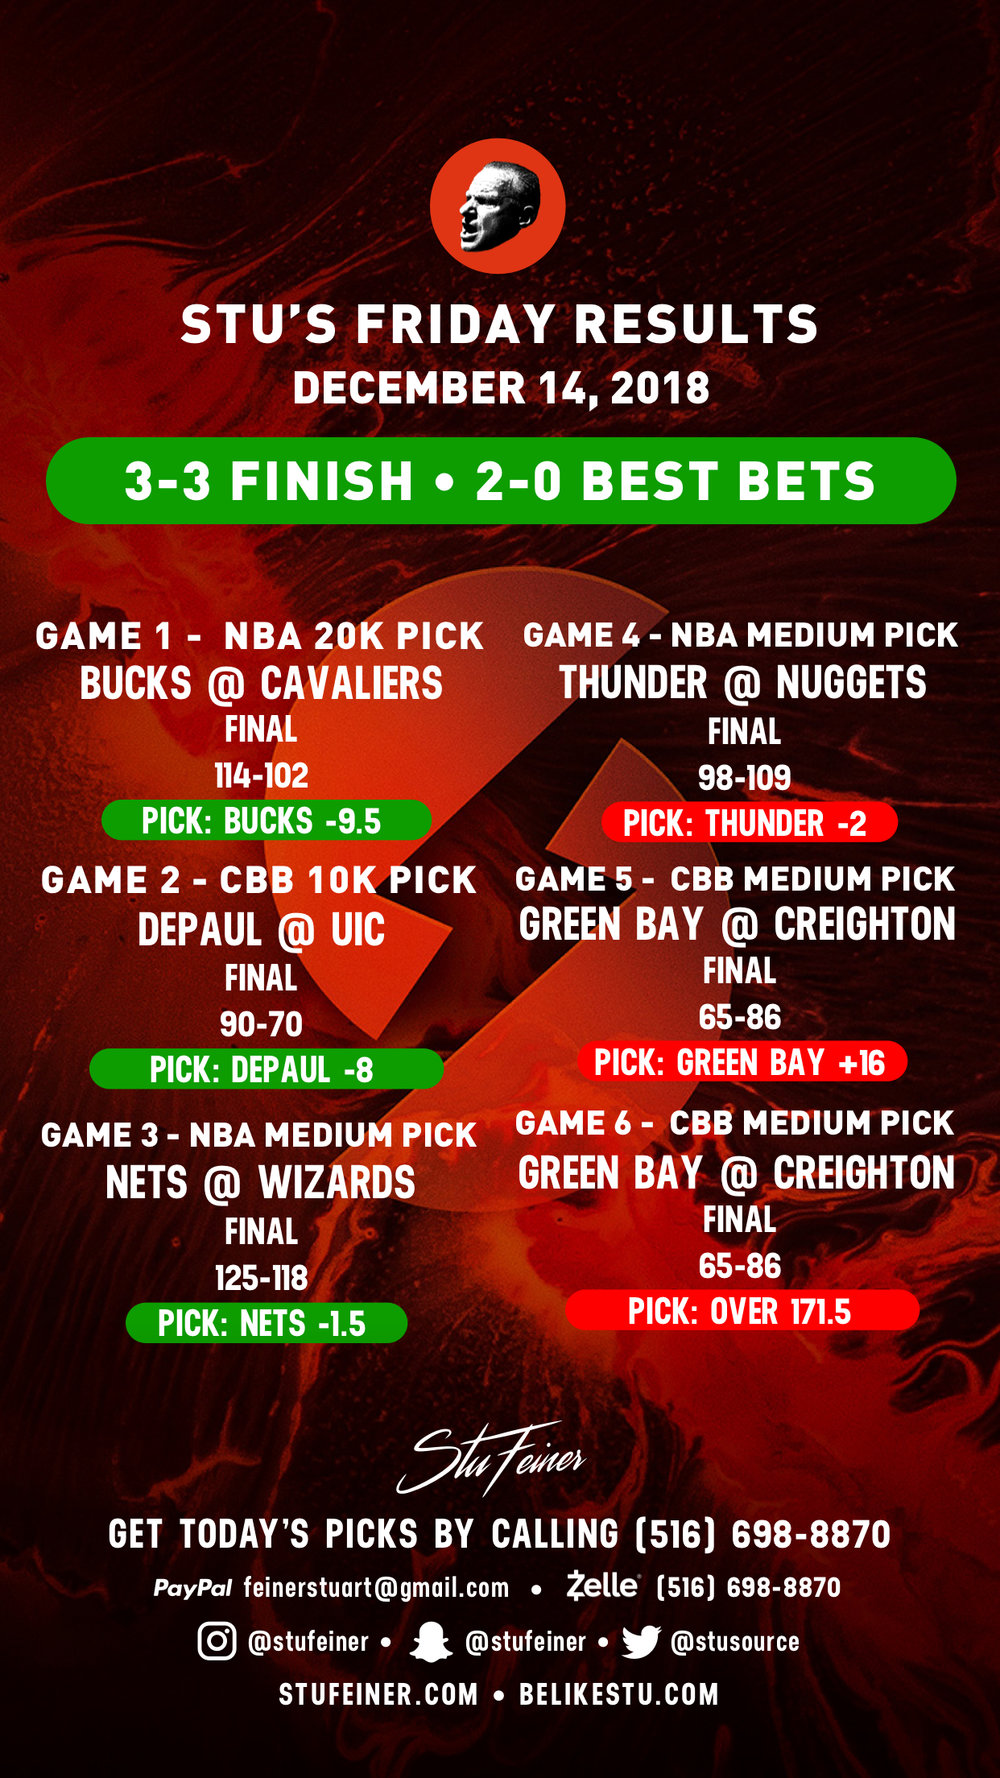 December 14, 2018 - 4-2 (66.7%) •  2-0 ON BEST BETS